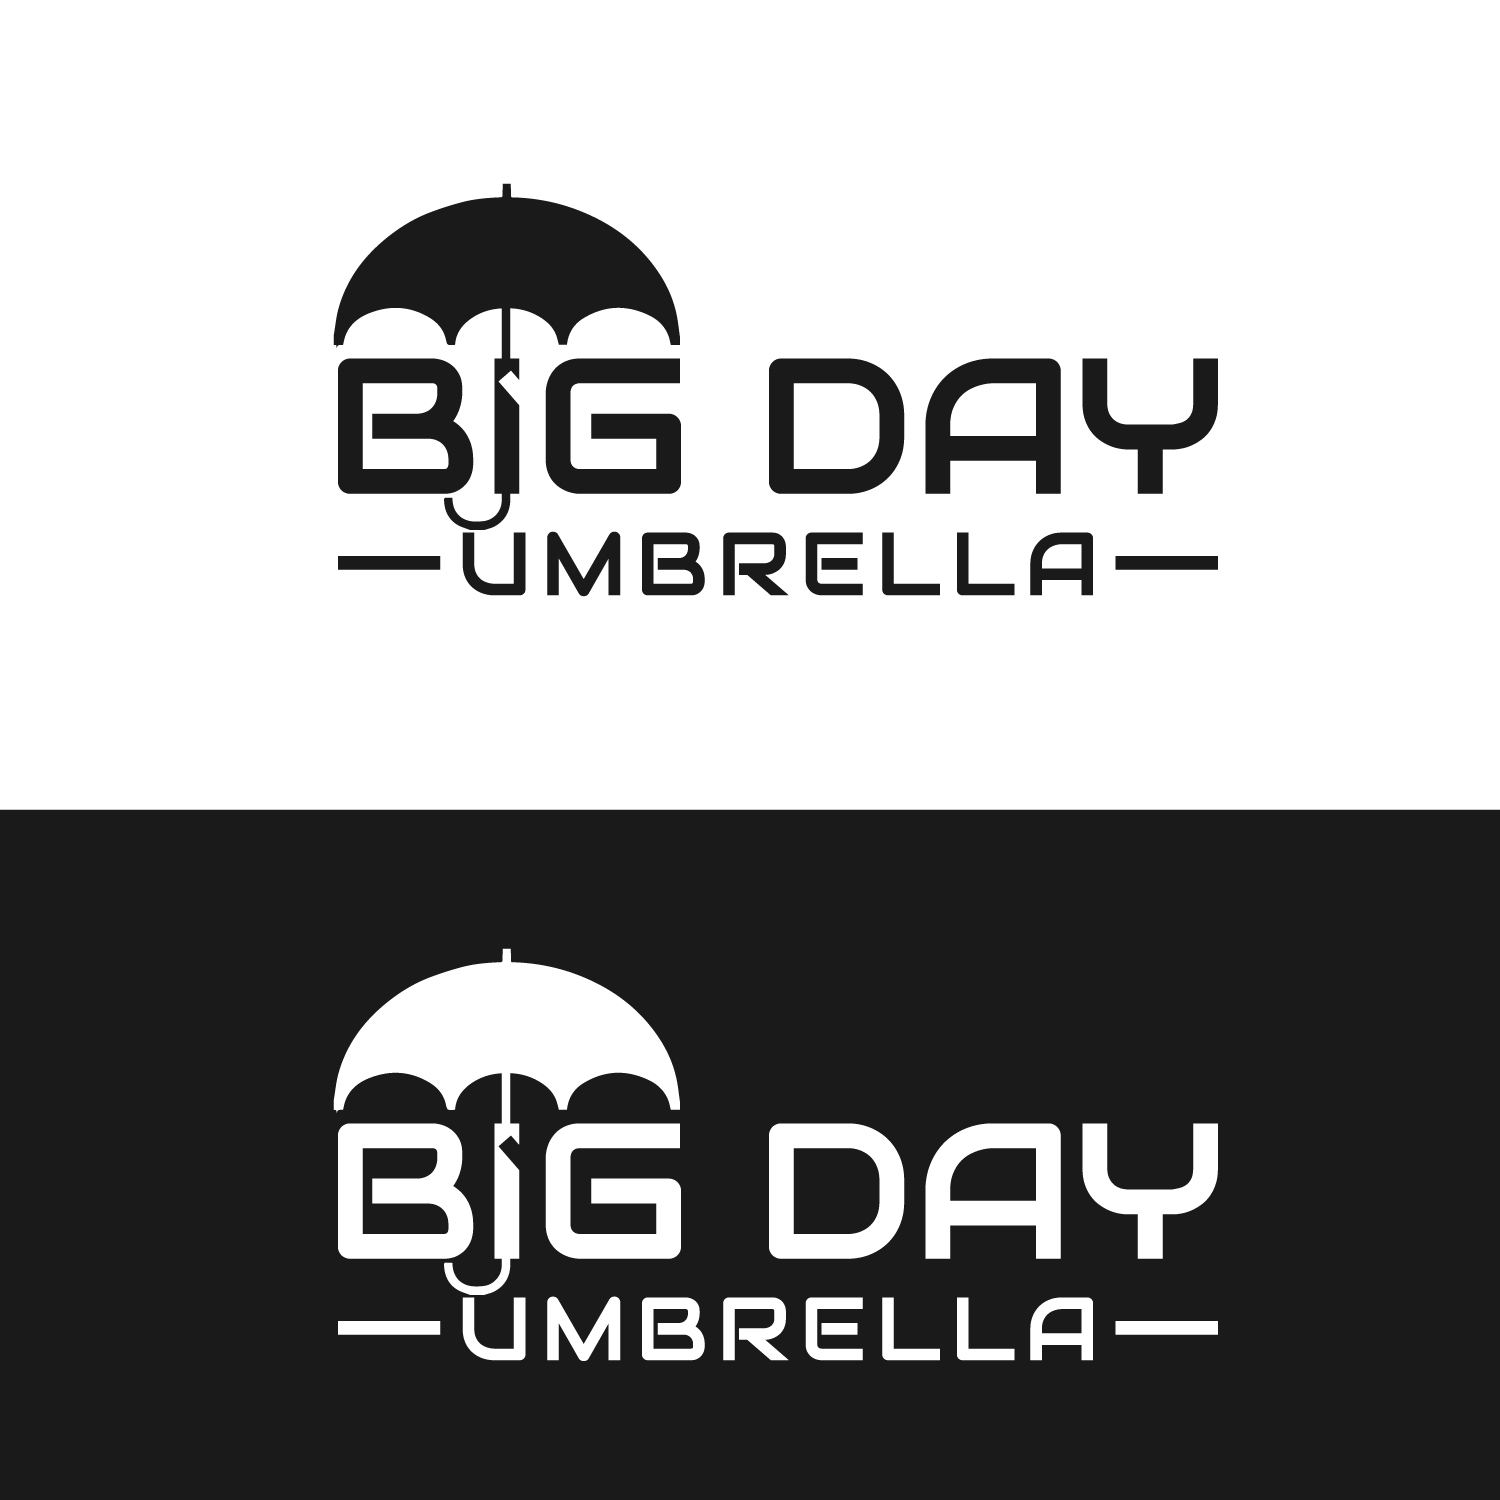 Logo Design for Big Day Umbrella (we want the image to be.